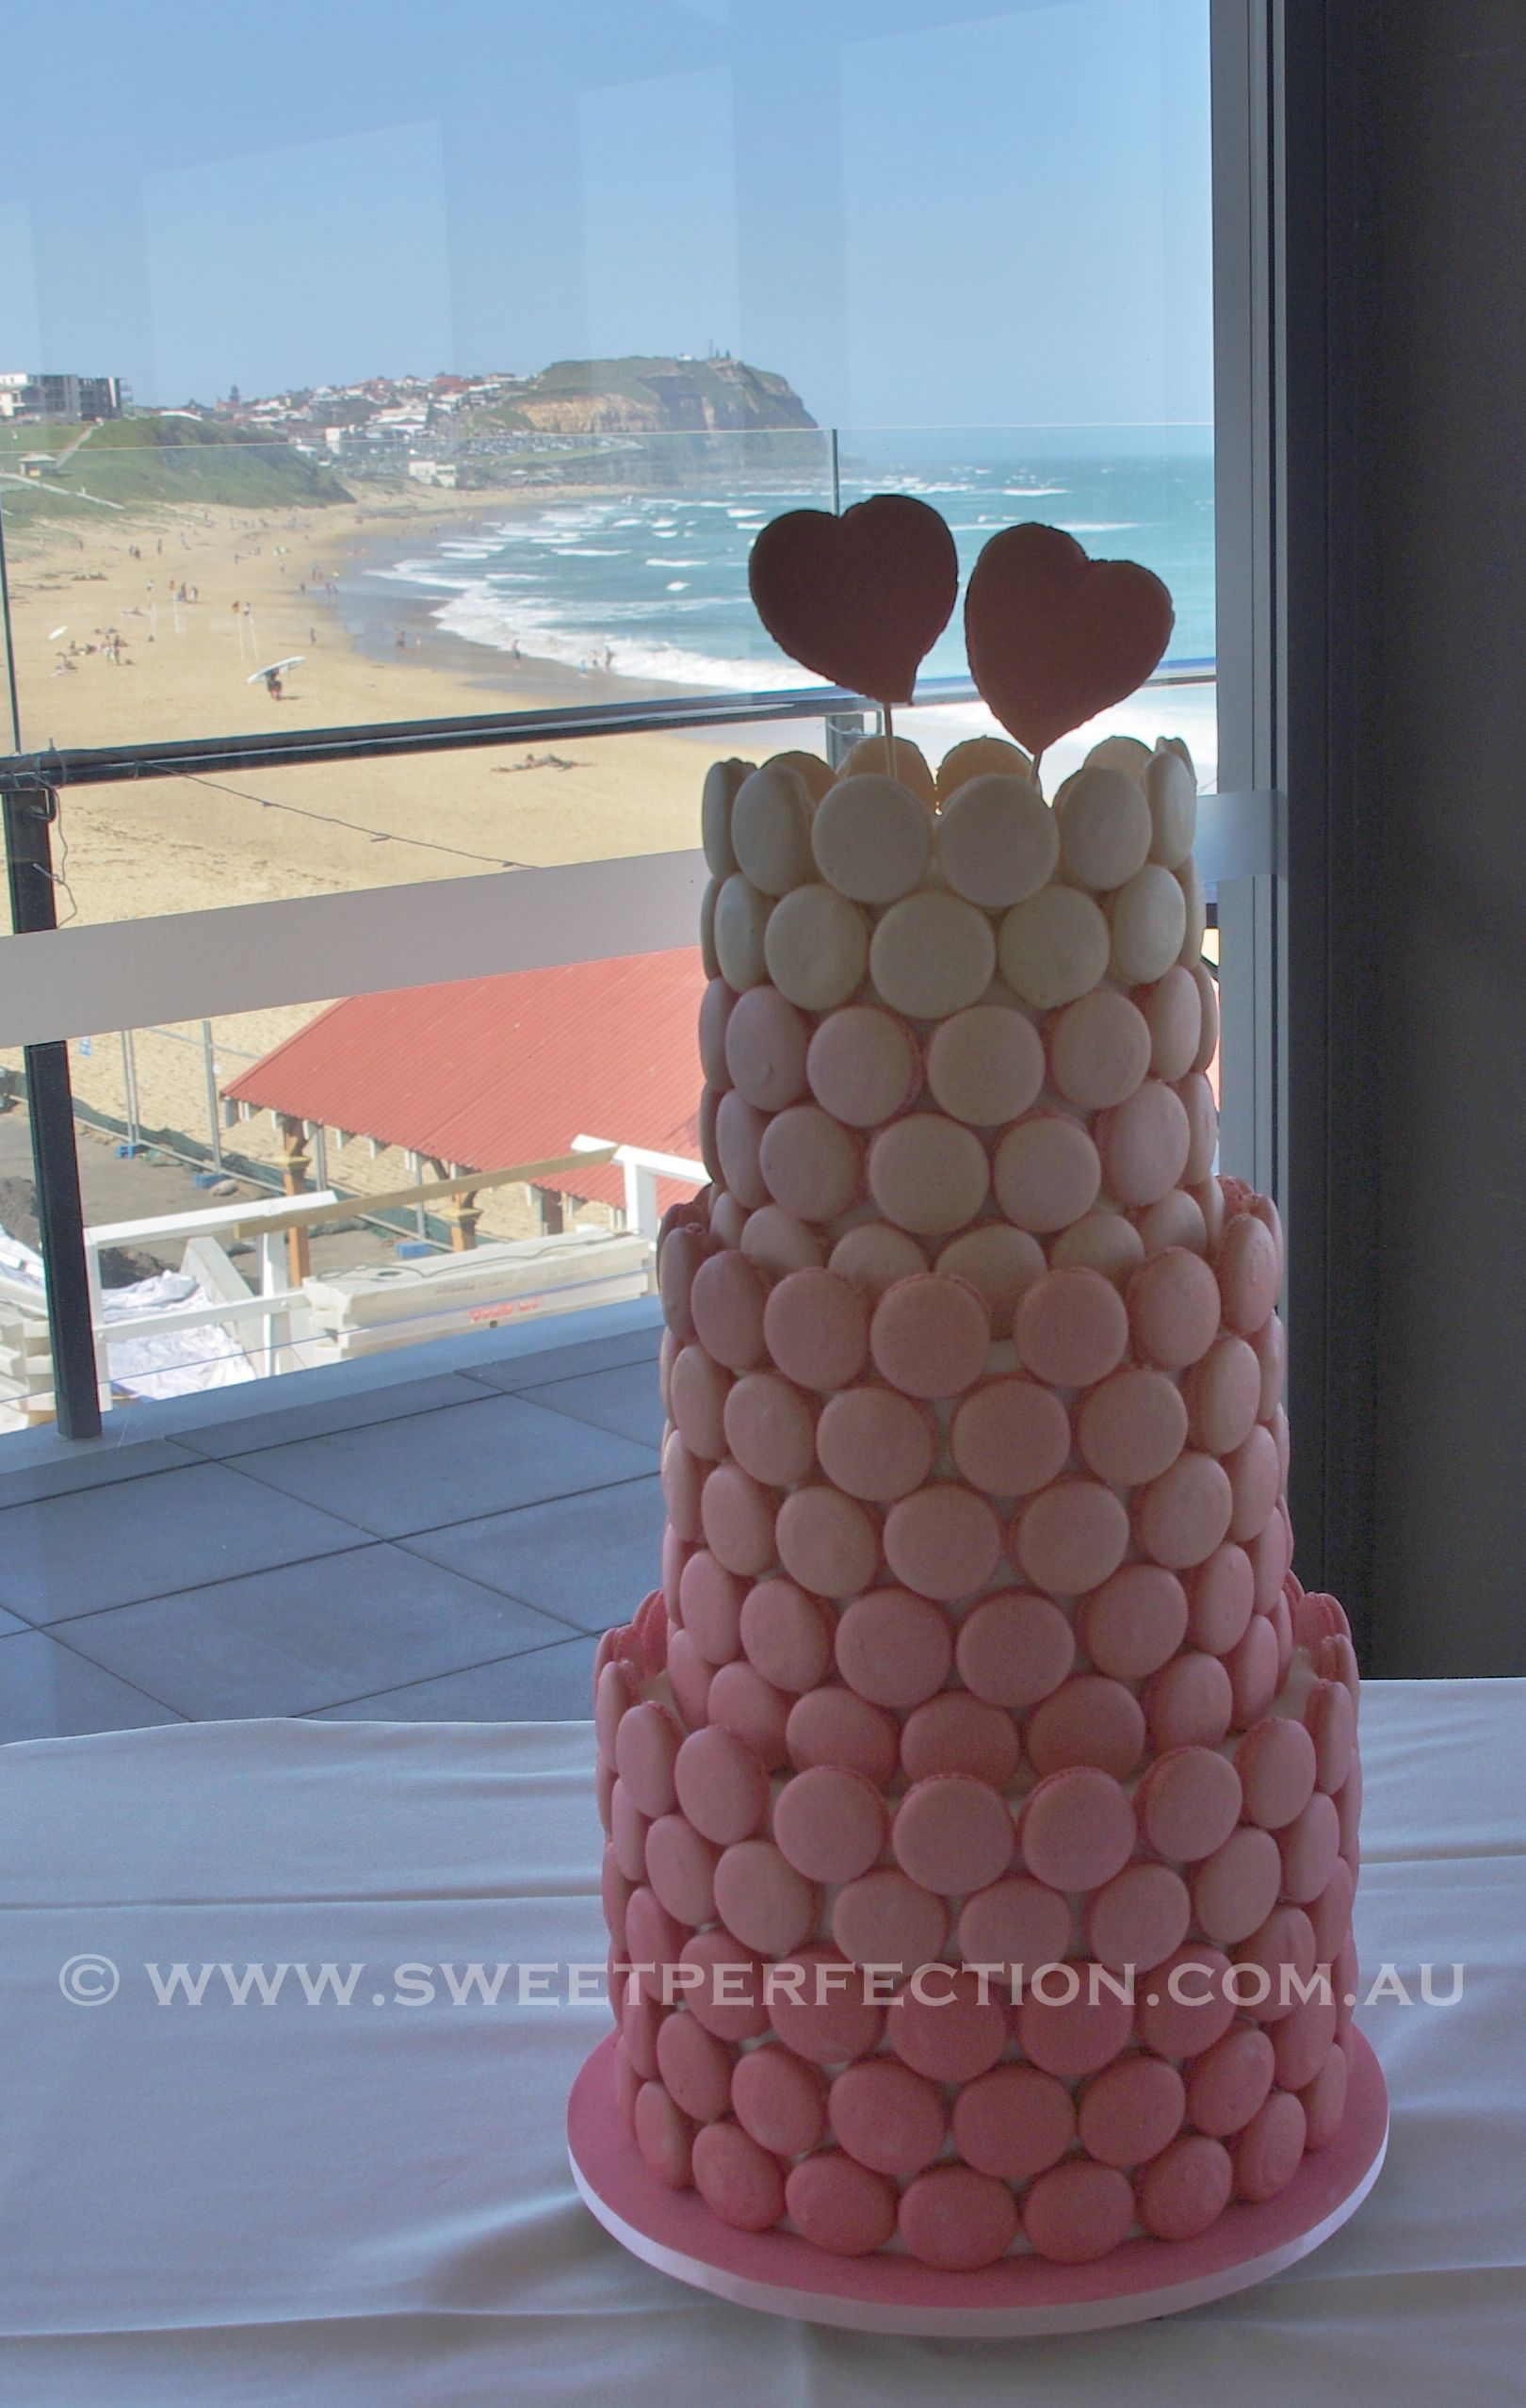 Beautiful weddings cakes in the beautiful city of Newcastle.